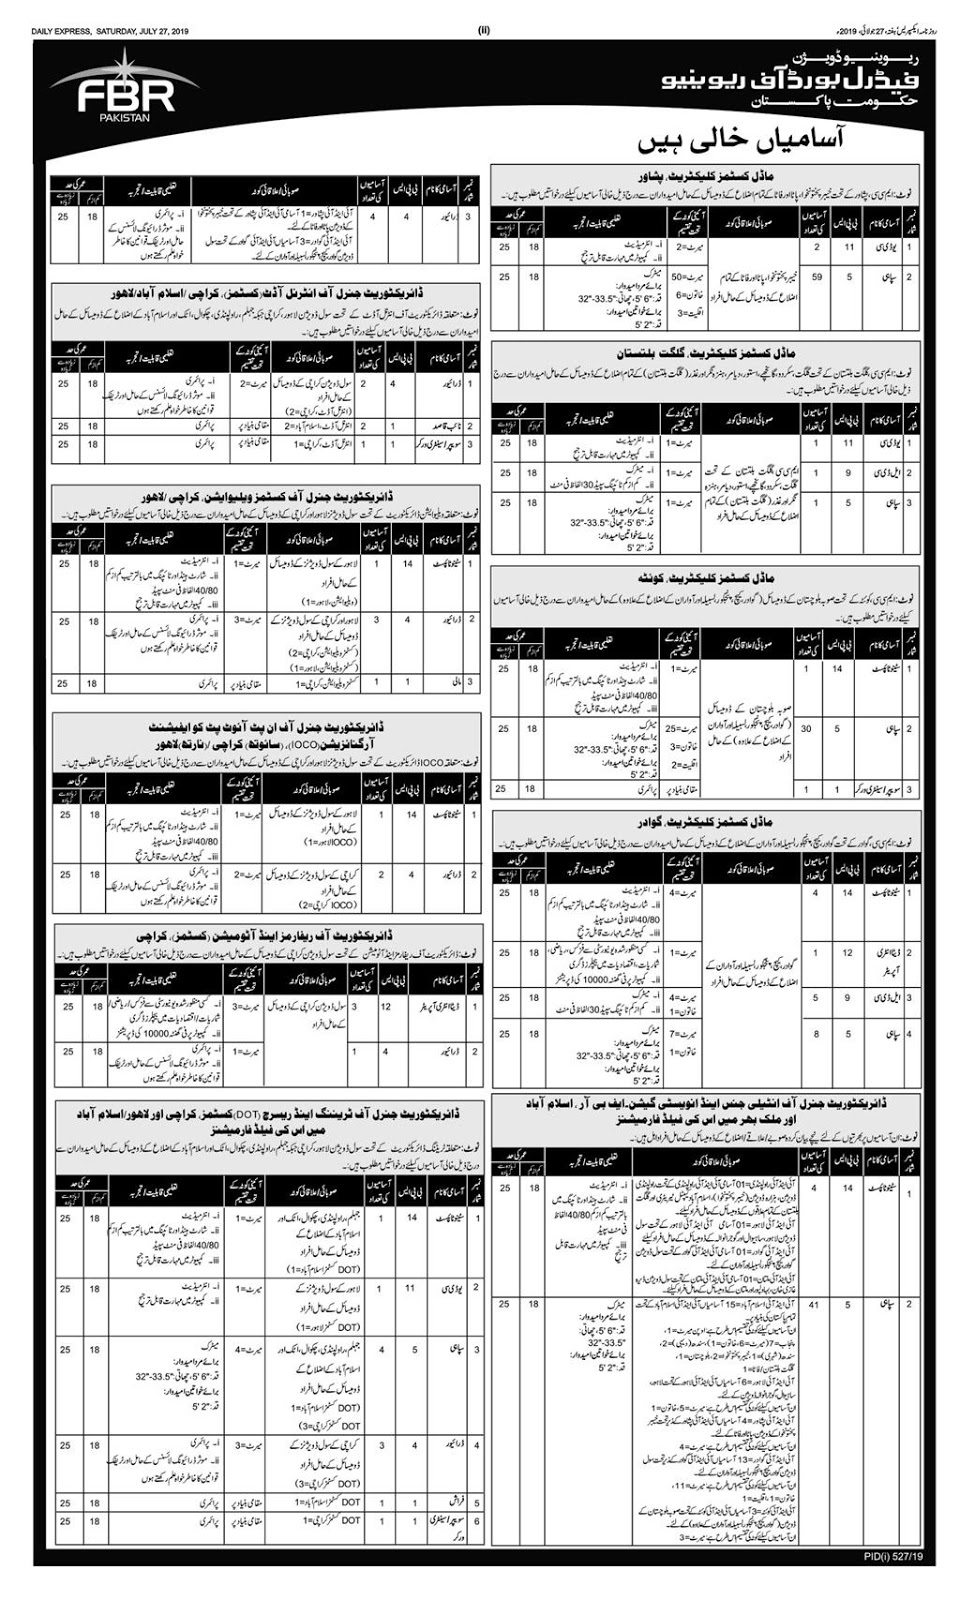 Advertisement for FBR Jobs July 2019 Page No. 1/3